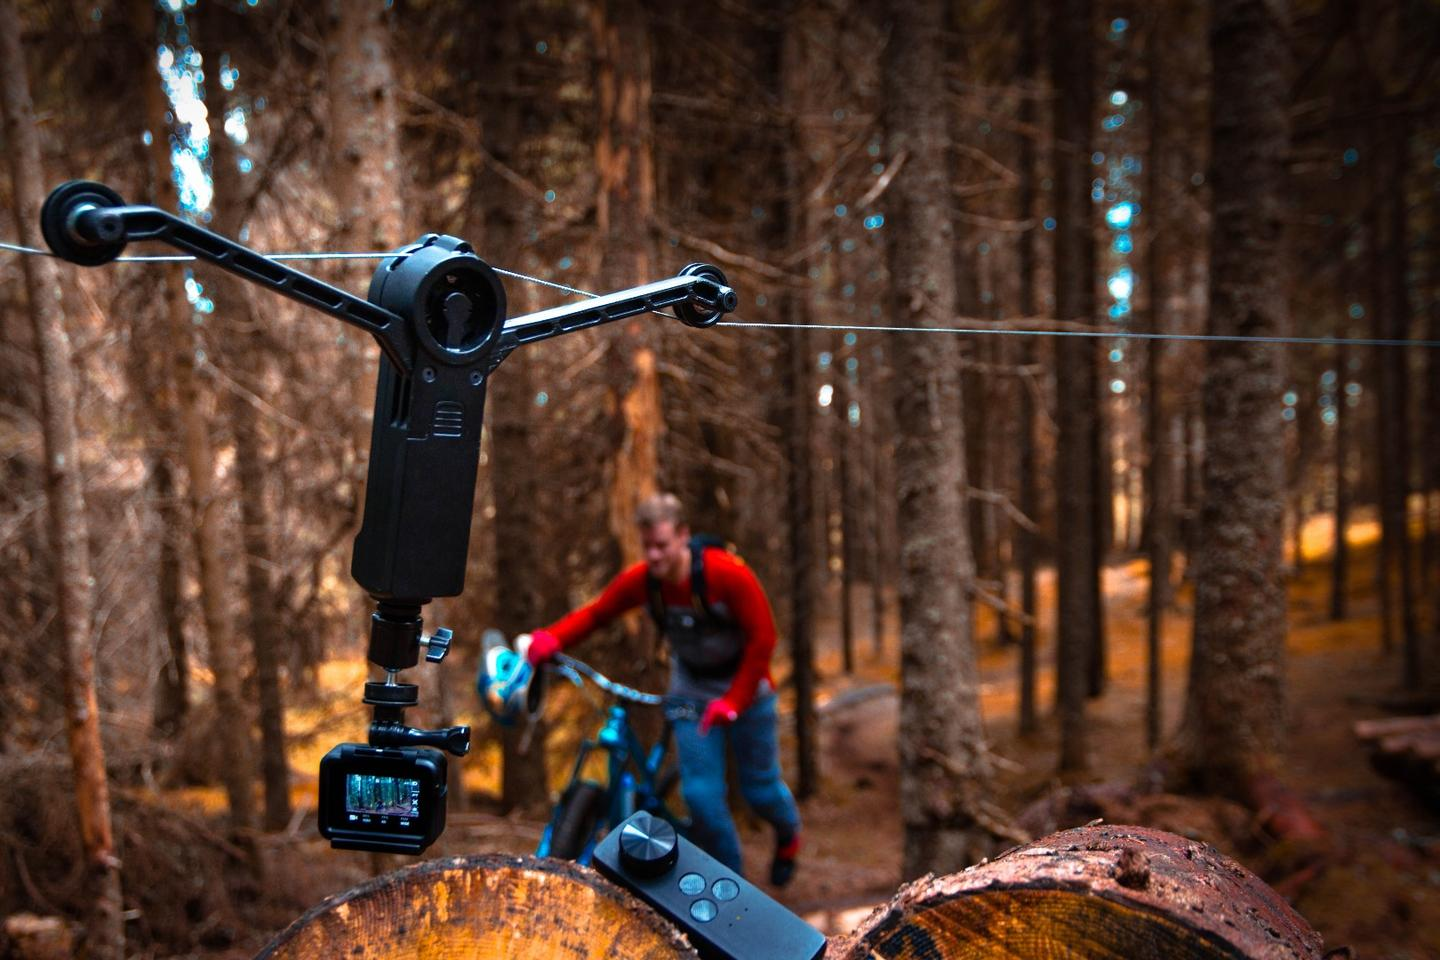 Wiral LITE's speed can be set anywhere from 0.006 mph (0.01 km/h) for timelapse shots, all the way up to 28 mph (45 km/h)